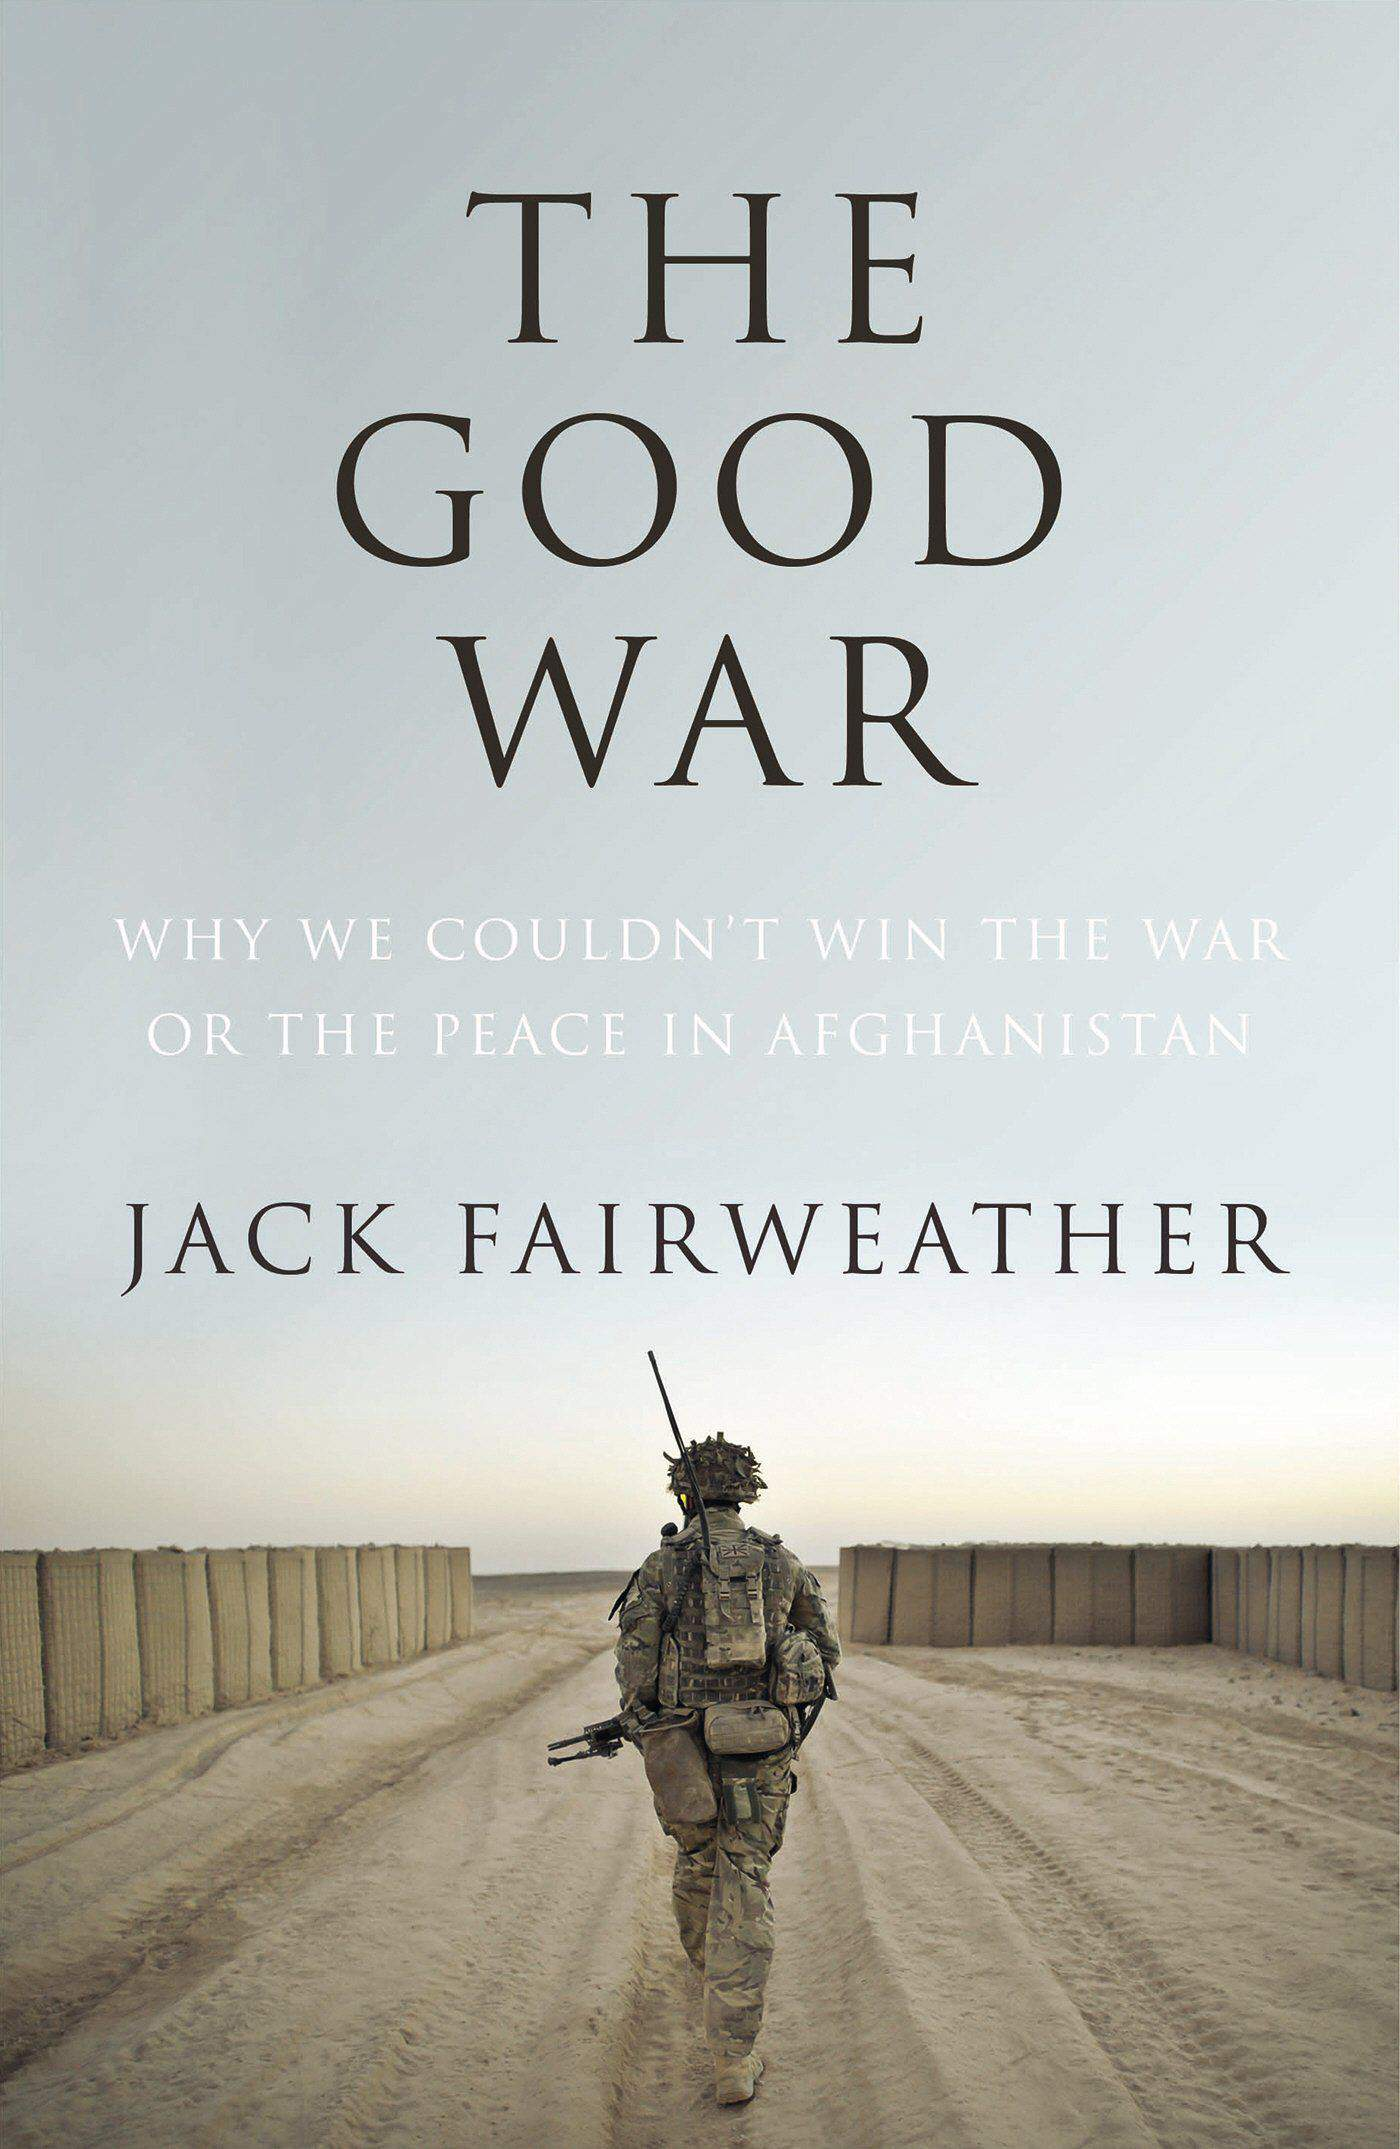 The Good War Why We Couldnt Win the War or the Peace in Afghanistan